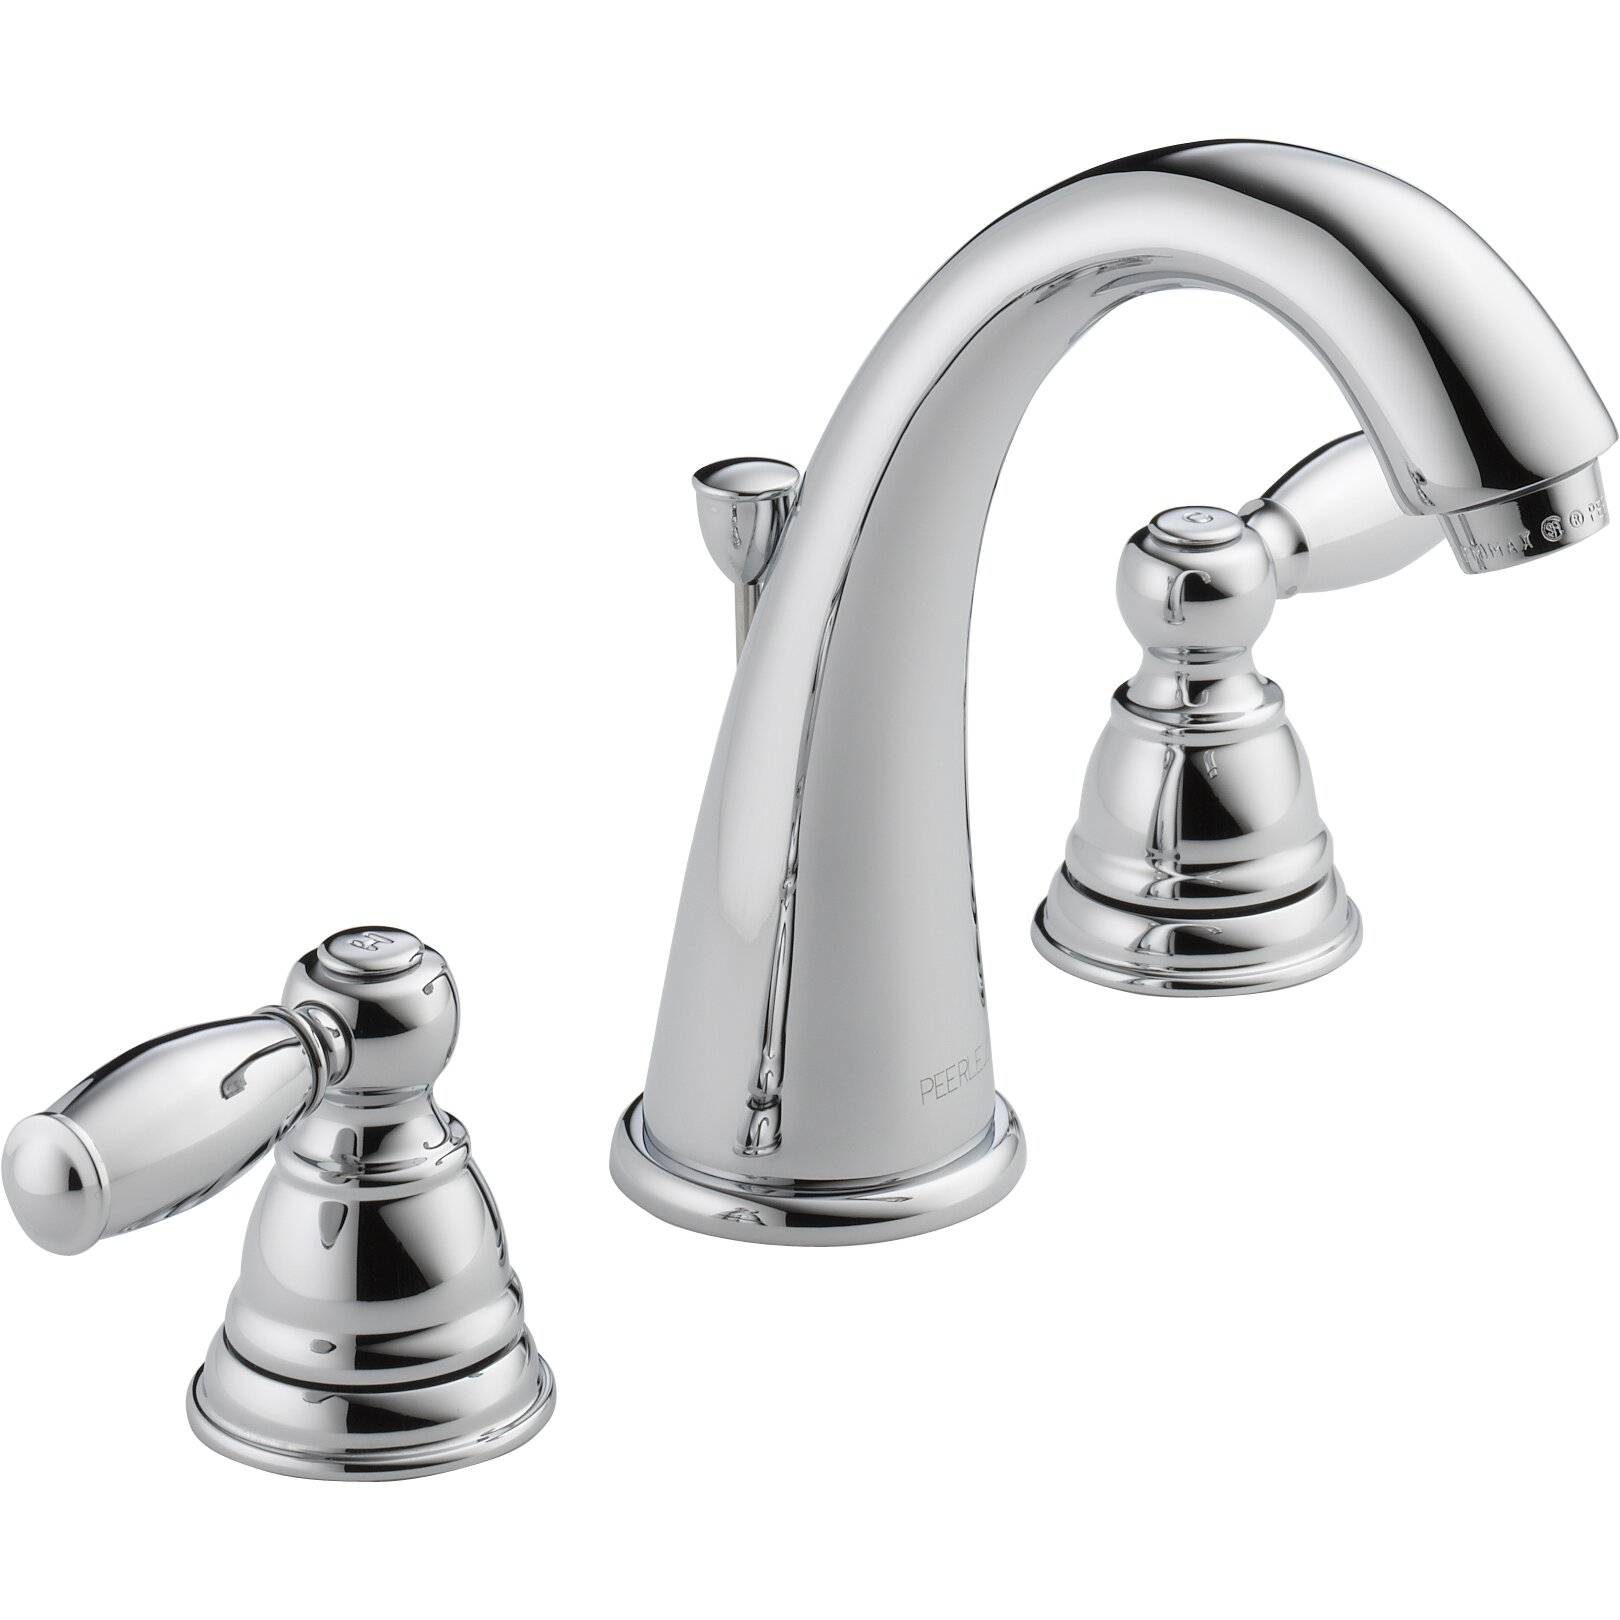 Peerless Kitchen Faucets: Peerless Faucets Widespread Bathroom Faucet With Double